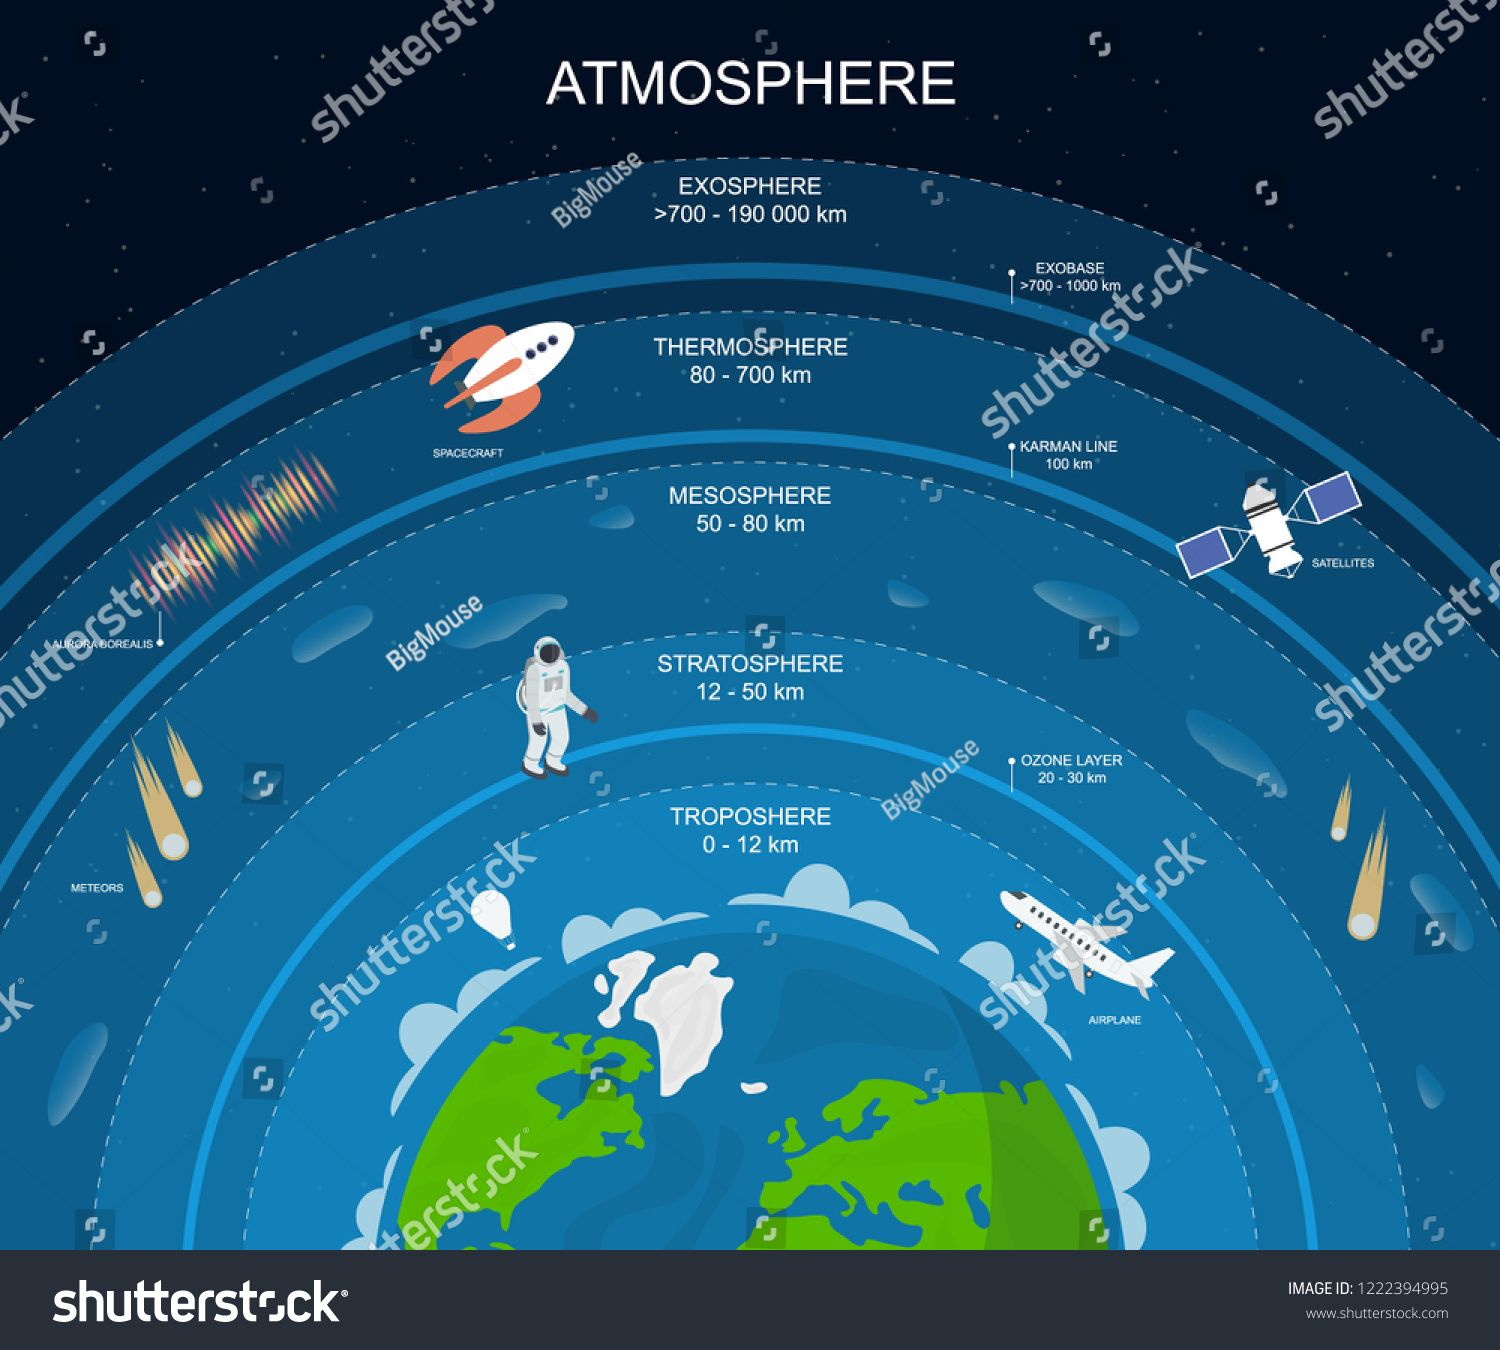 Cartoon Atmosphere Layers Card Poster Background Include Of Exosphere Thermosphere Mesosphere Strato Graphics Design Ideas Astronomy Facts Stock Illustration